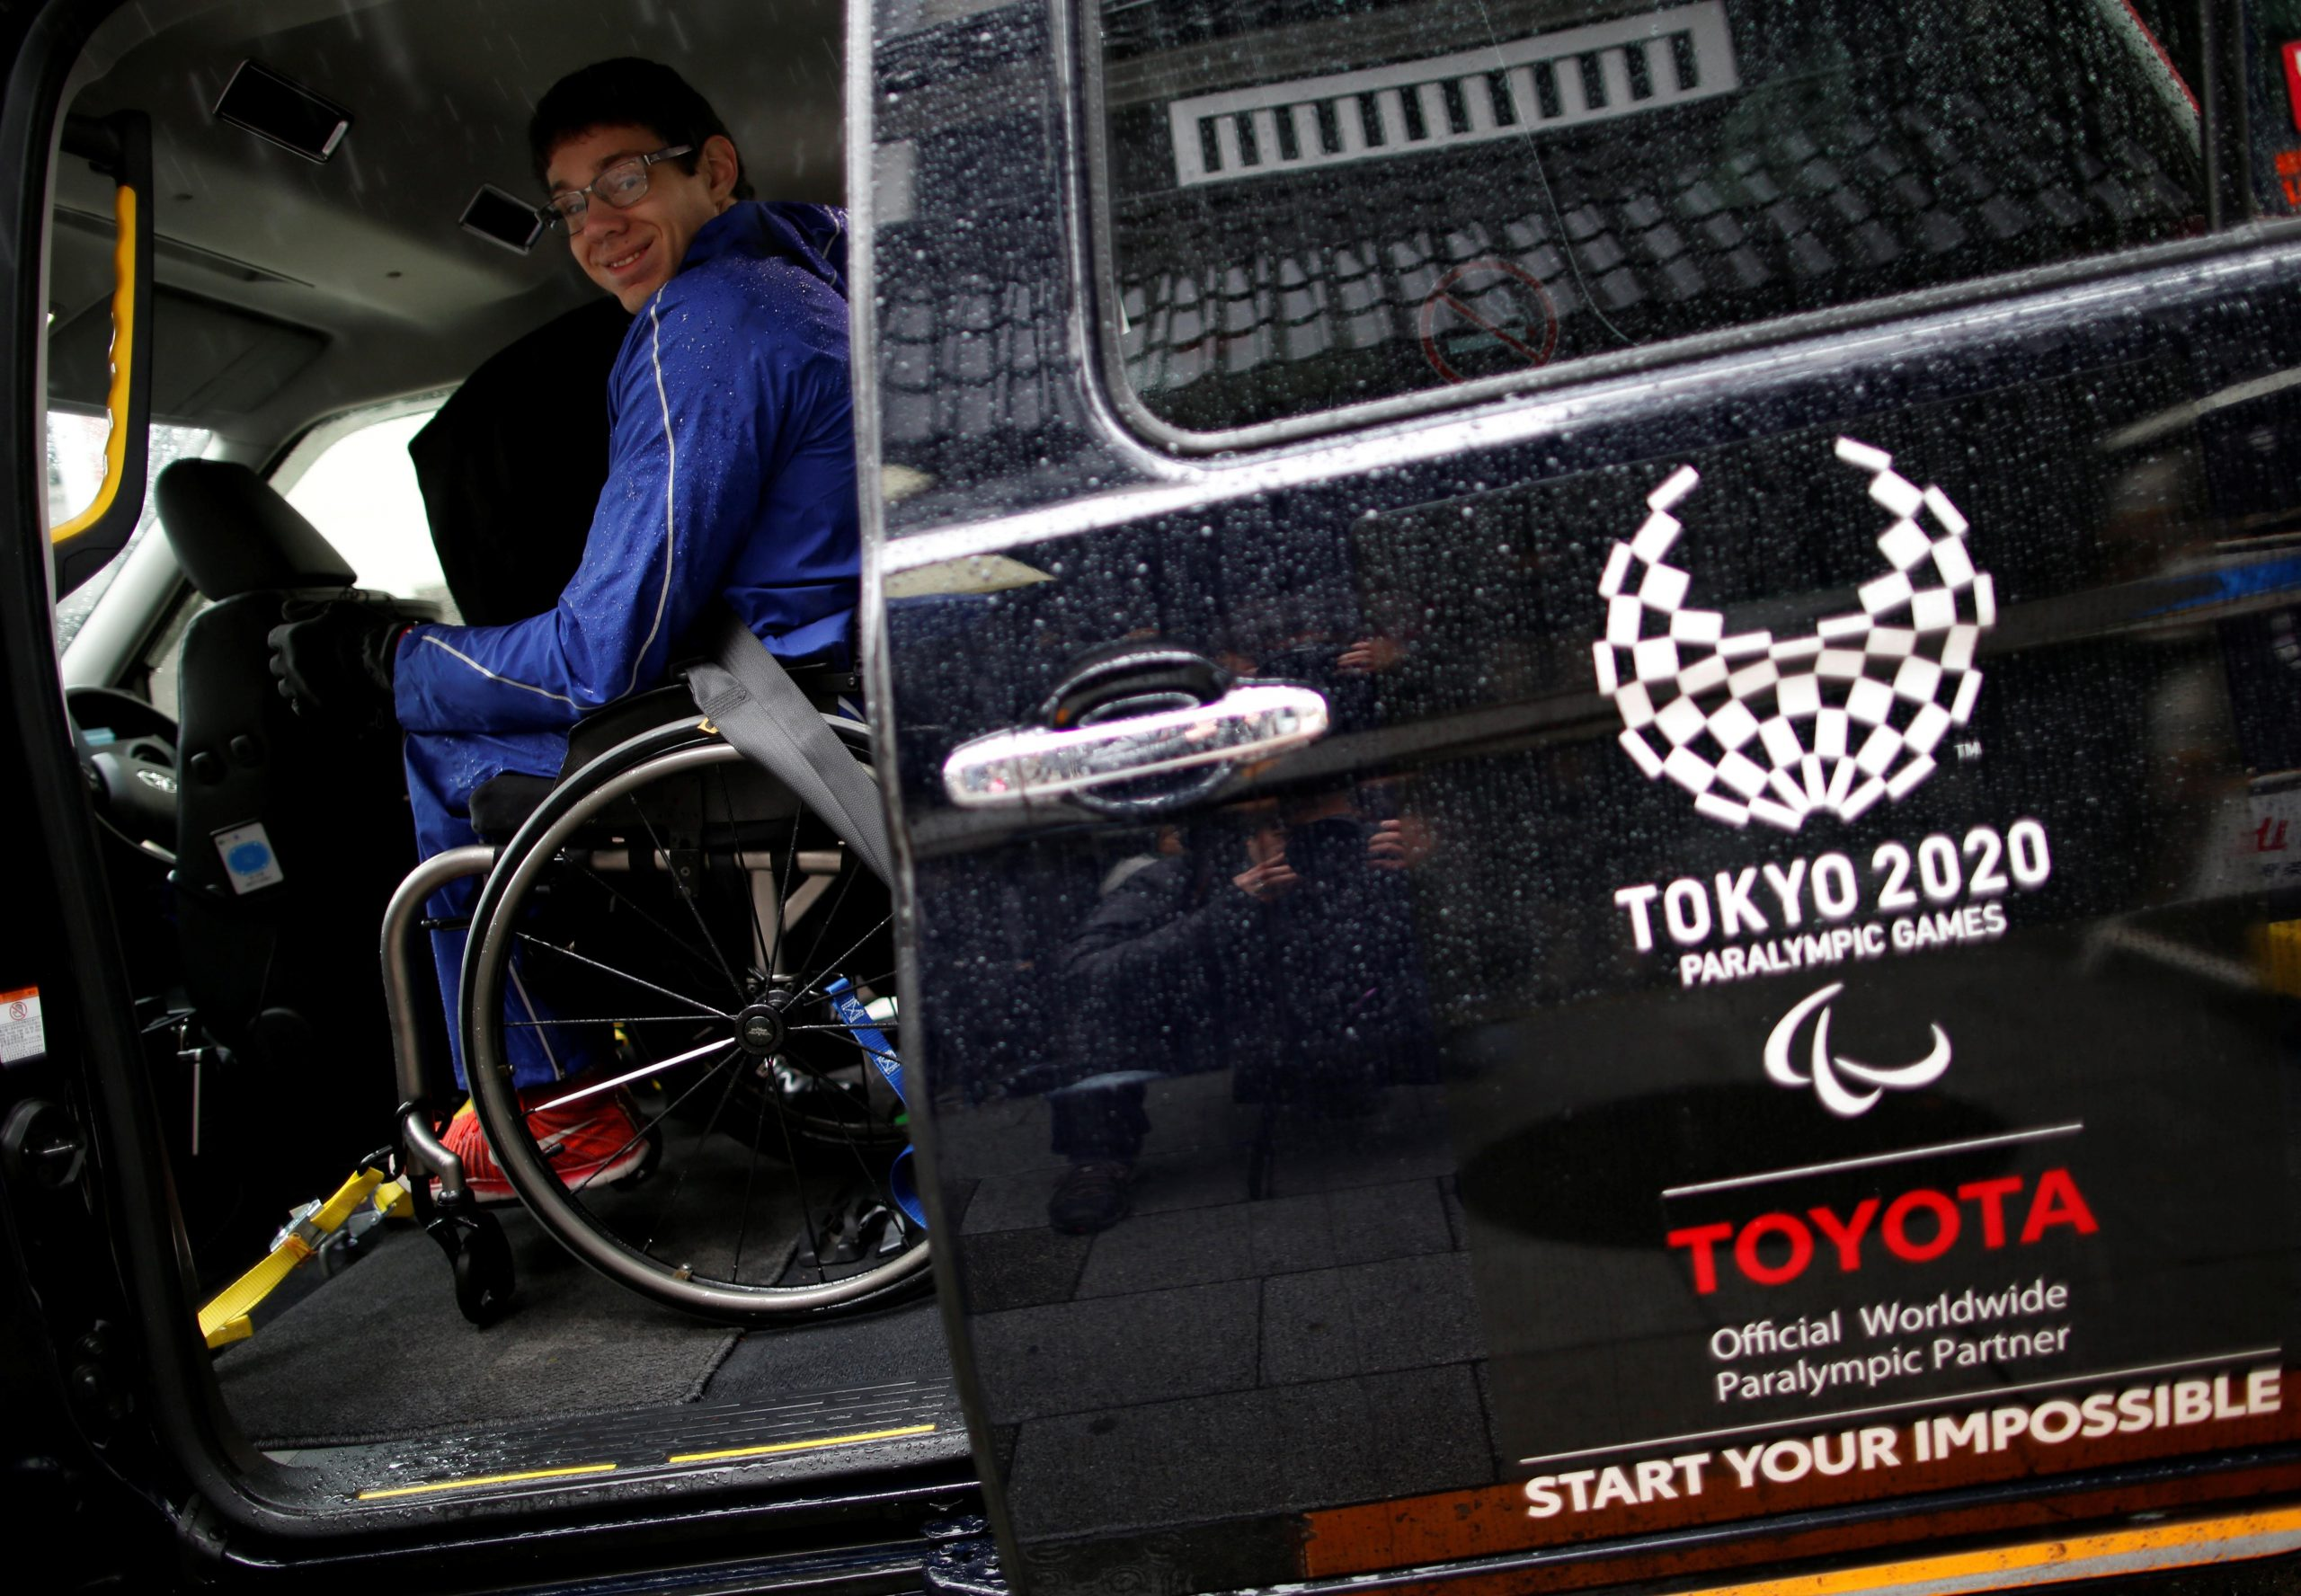 Designed by committee, Toyota's Japan Taxi becomes an expensive Olympic symbol